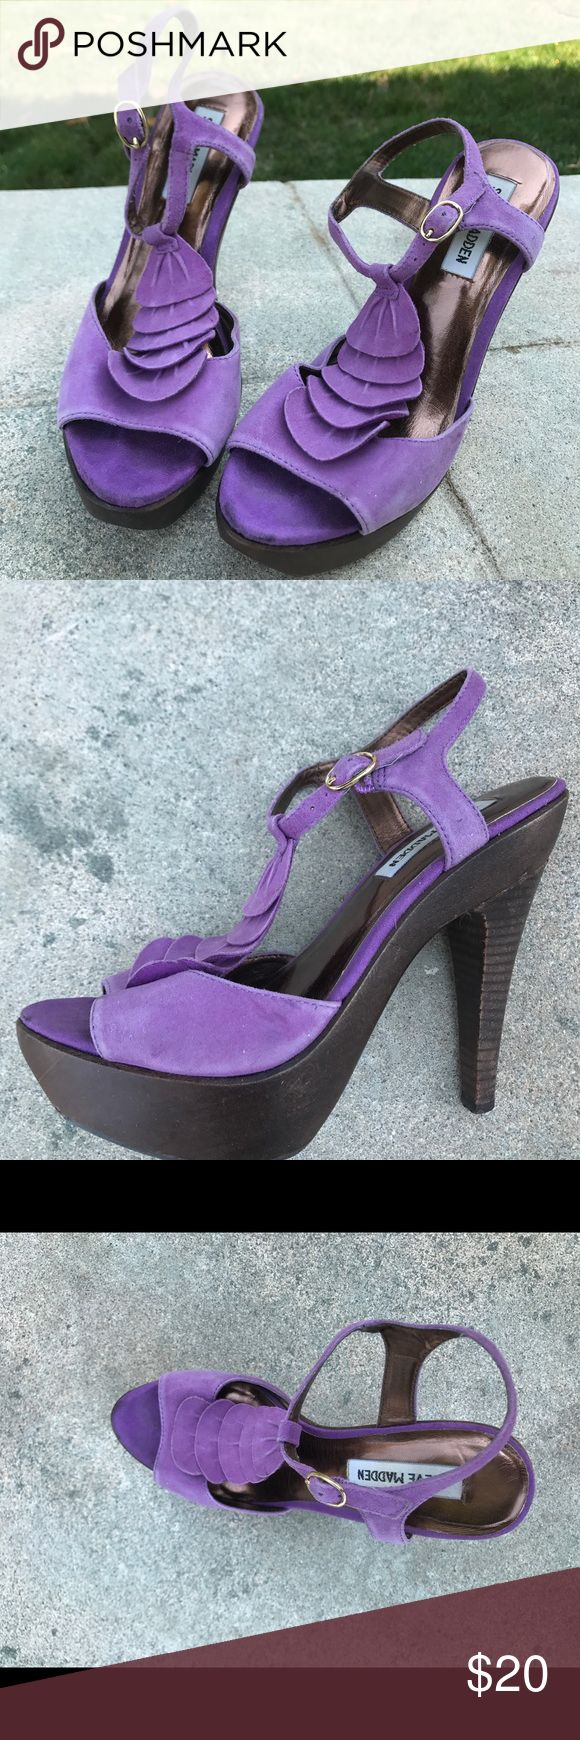 Truffle - Steve Madden heels Purple ruffle t-bar heeled sandal. Heel measures 5 inches high. Peep toe design. Some wear noticeable on the back of the heel ( see picture). Bought these when I saw them worn by Silver on 90210! Steve Madden Shoes Heels